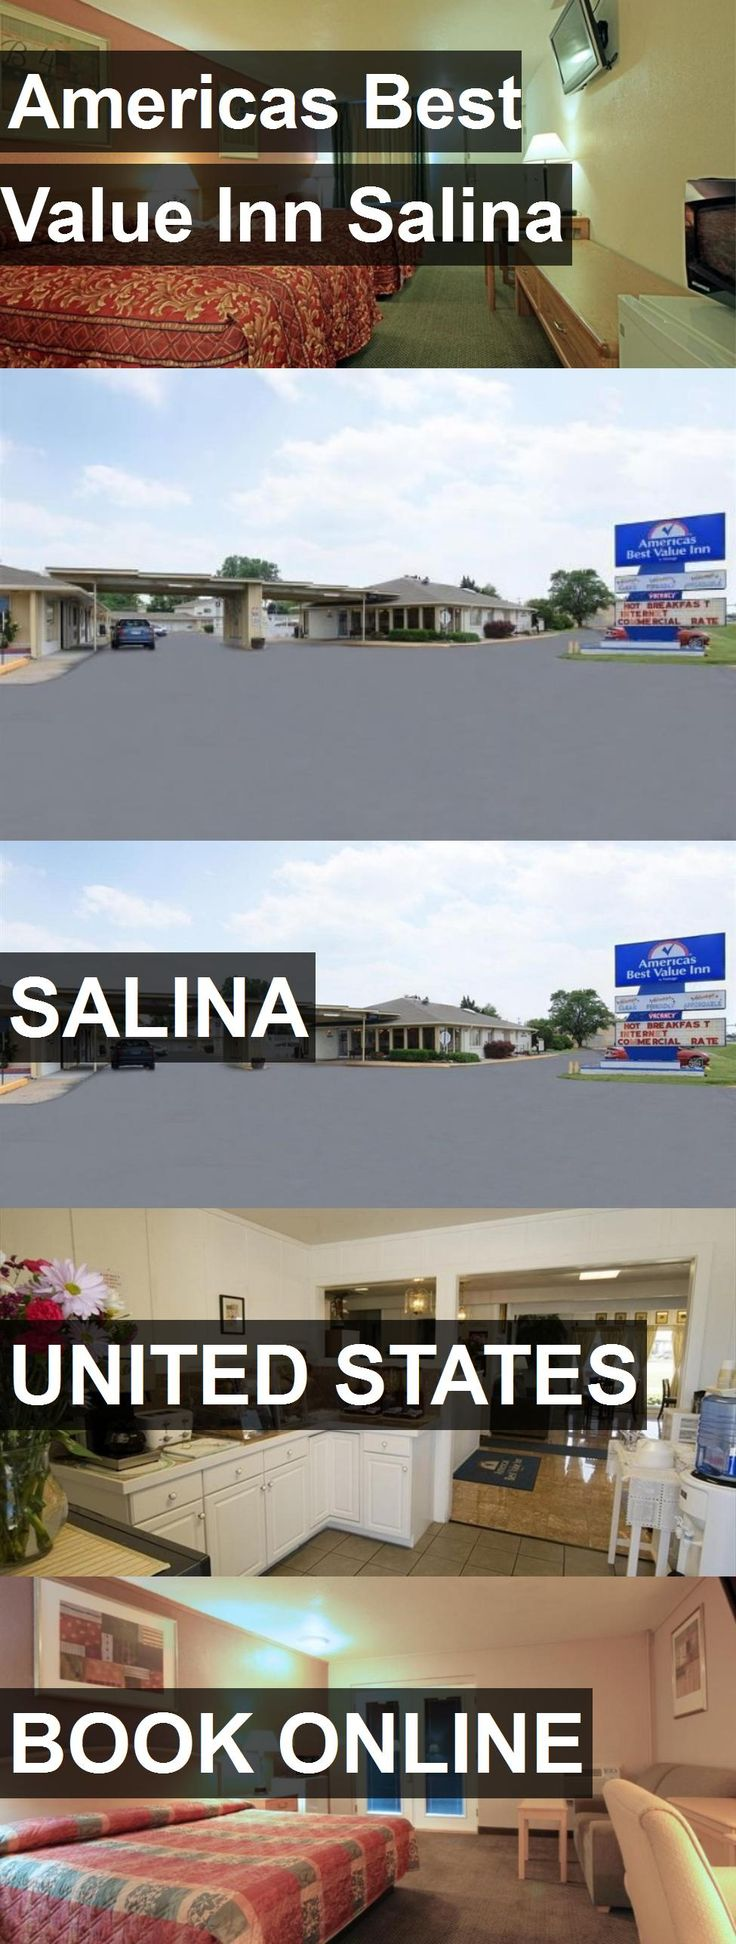 Hotel Americas Best Value Inn Salina in Salina, United States. For more information, photos, reviews and best prices please follow the link. #UnitedStates #Salina #travel #vacation #hotel